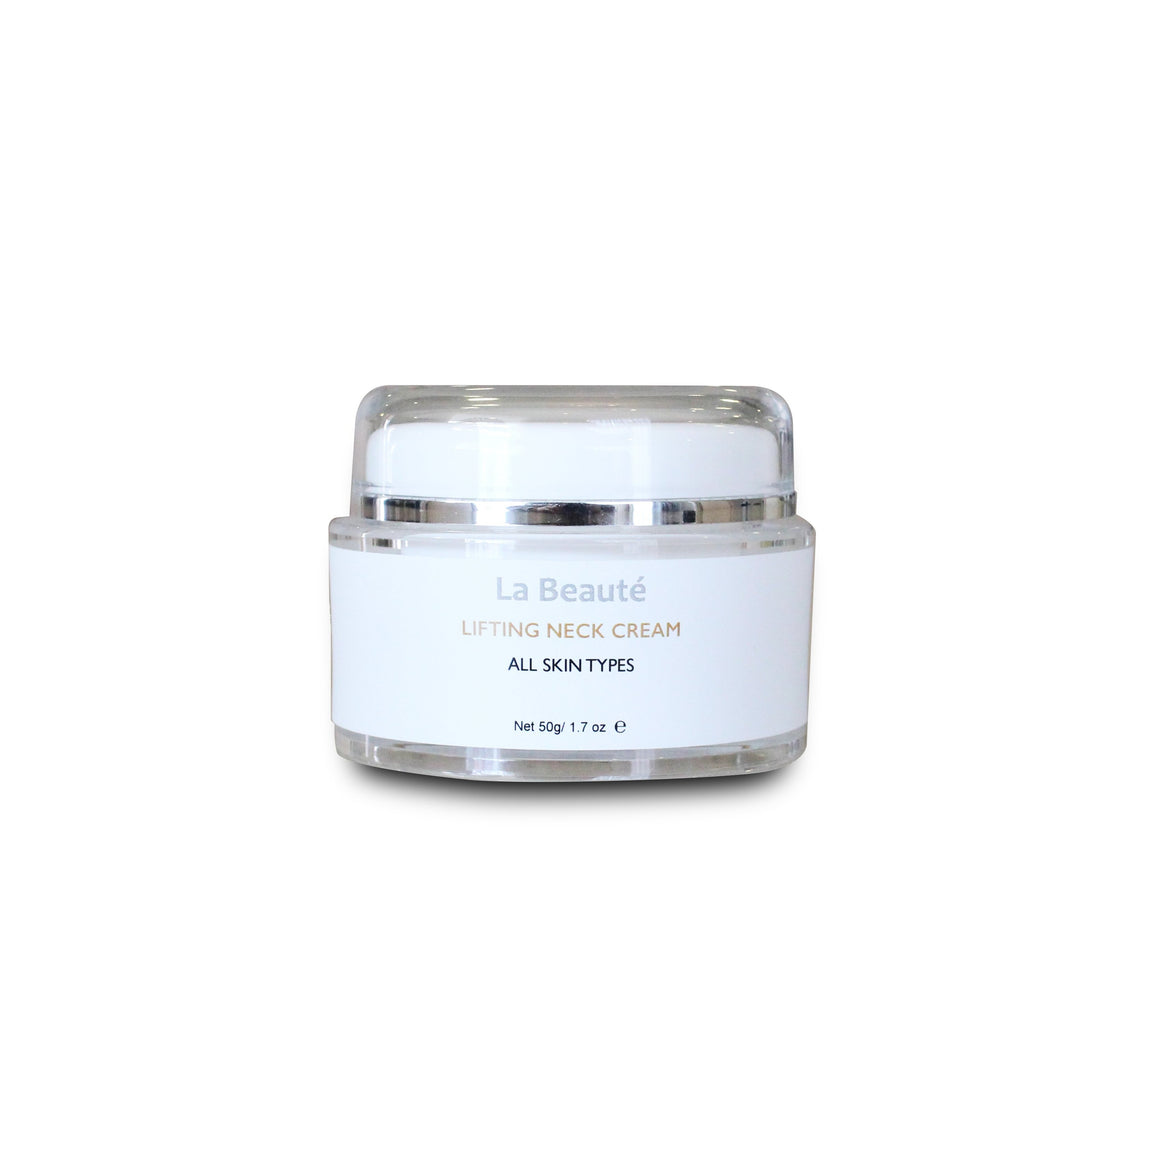 La Beaute -  Lifting Neck Cream 50g WS